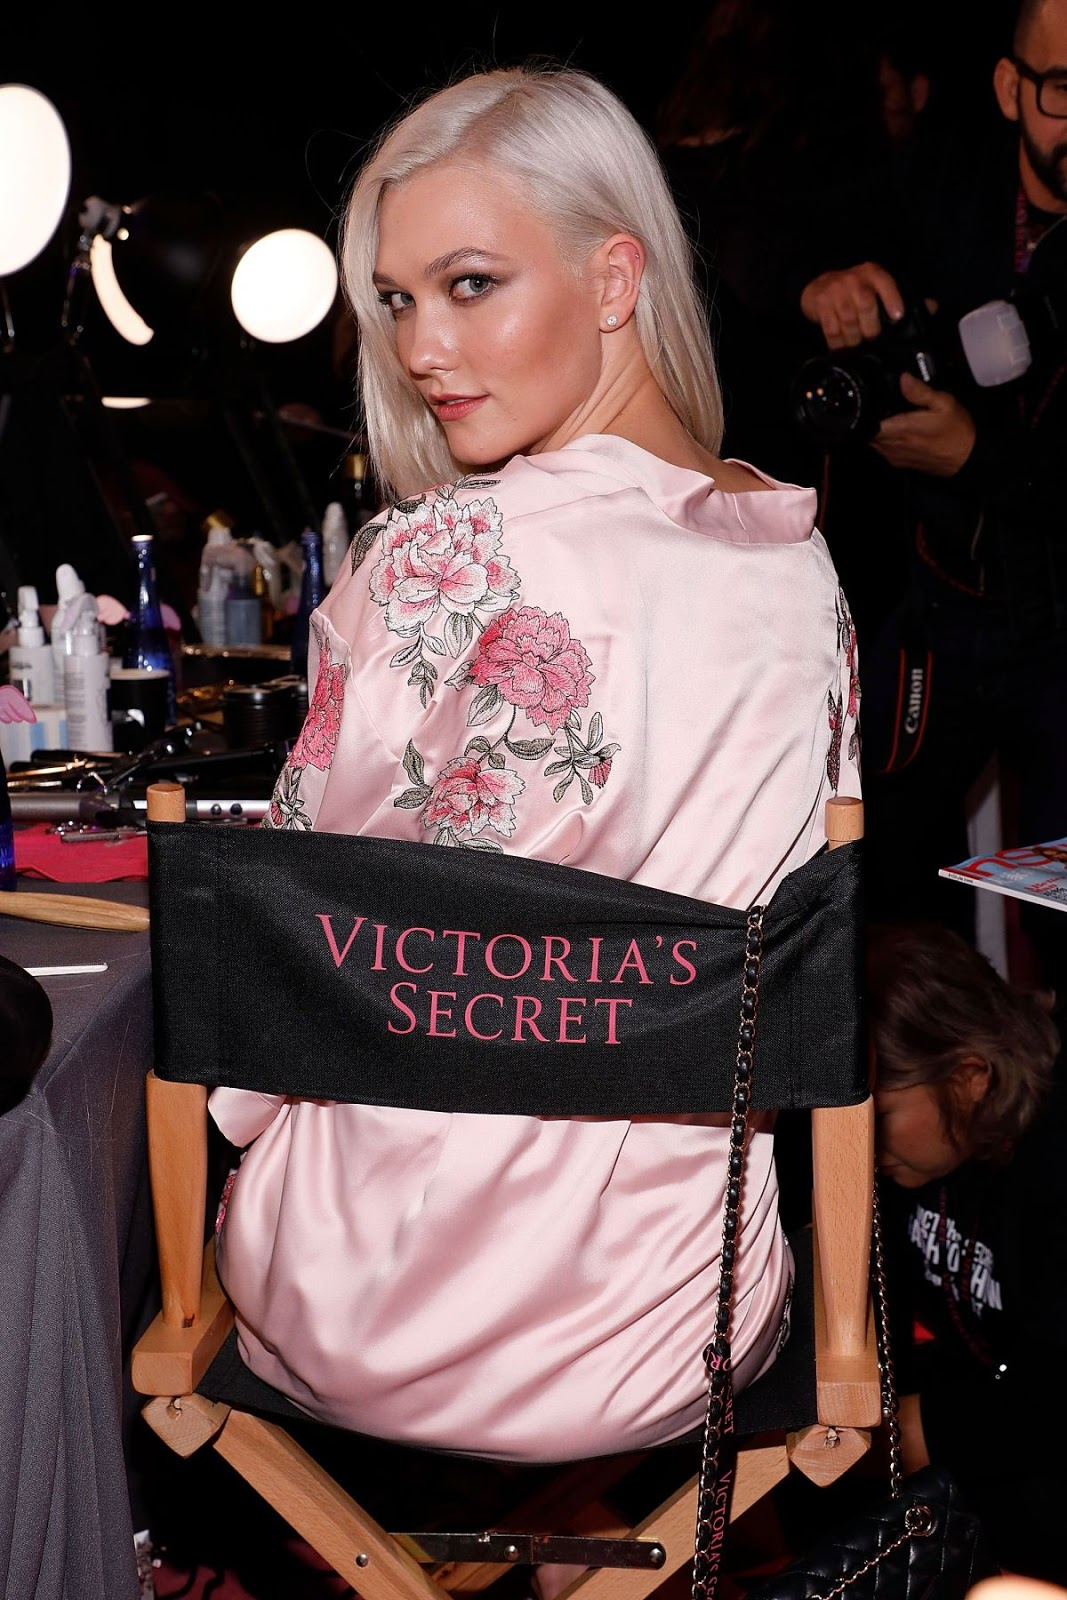 Karlie Kloss on the Backstage at 2017 Victoria's Secret Fashion Show in Shanghai